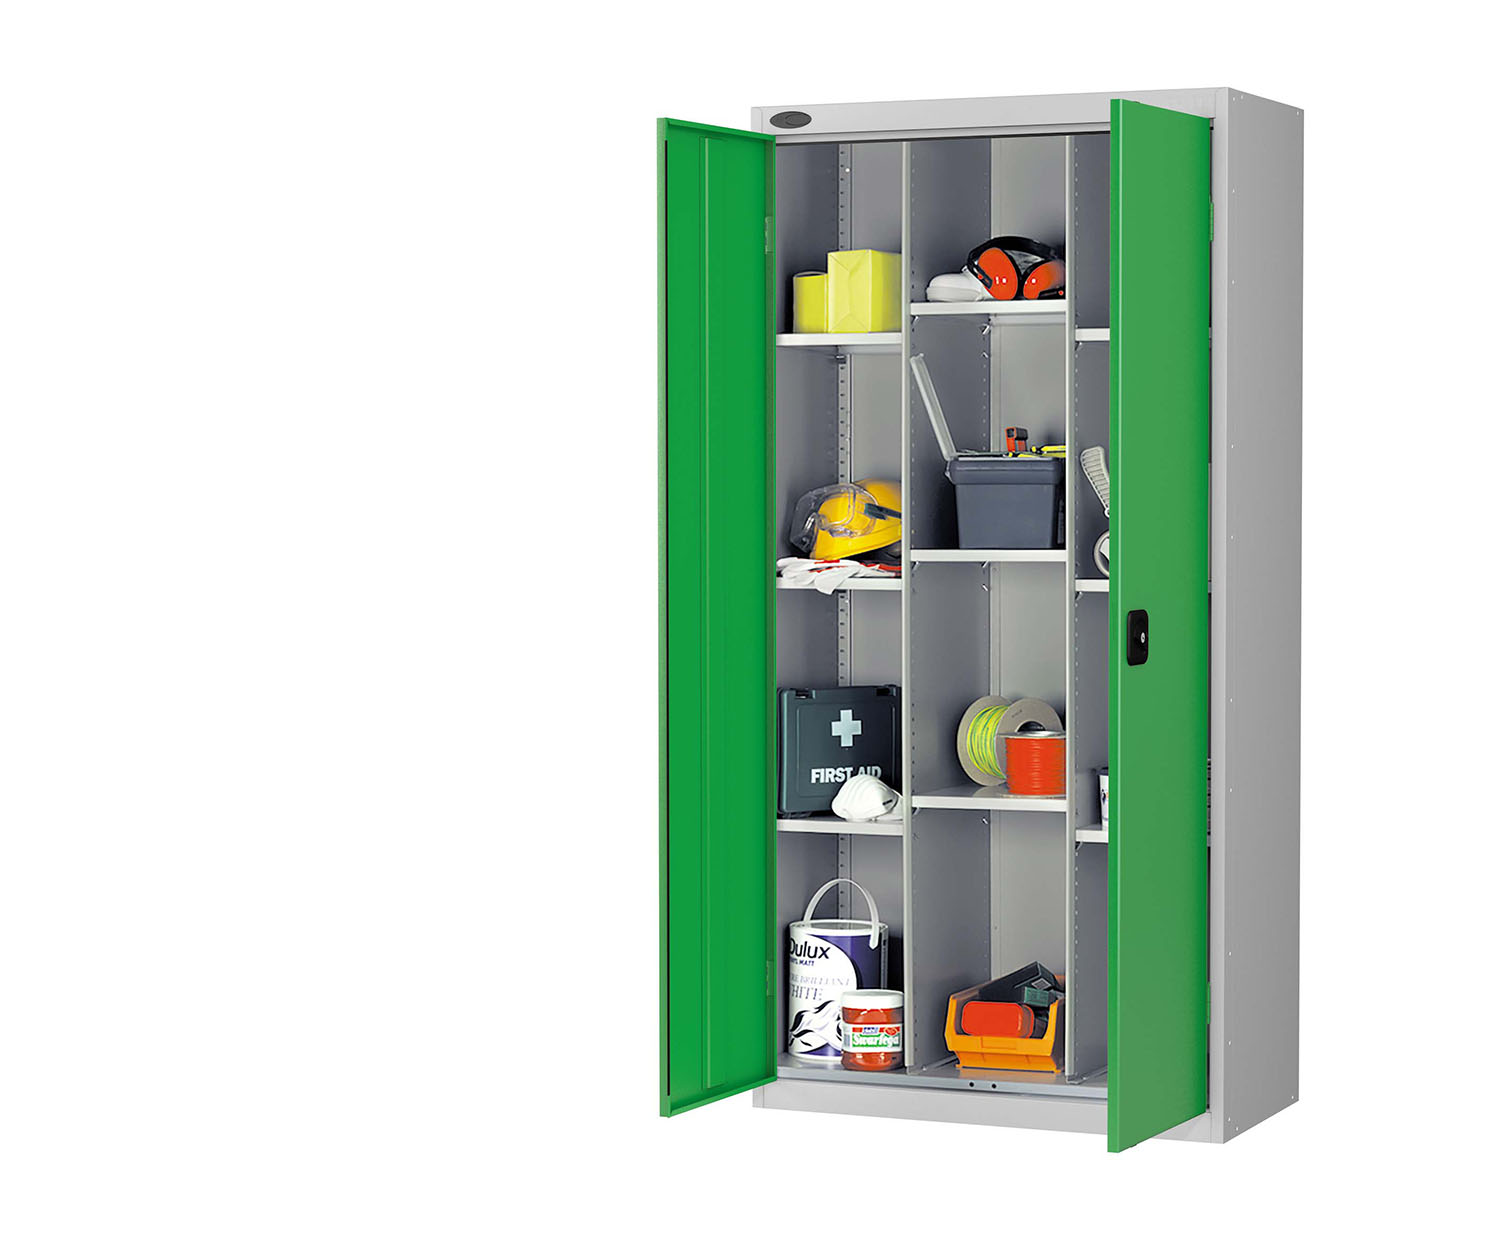 Probe compartment cupboard green